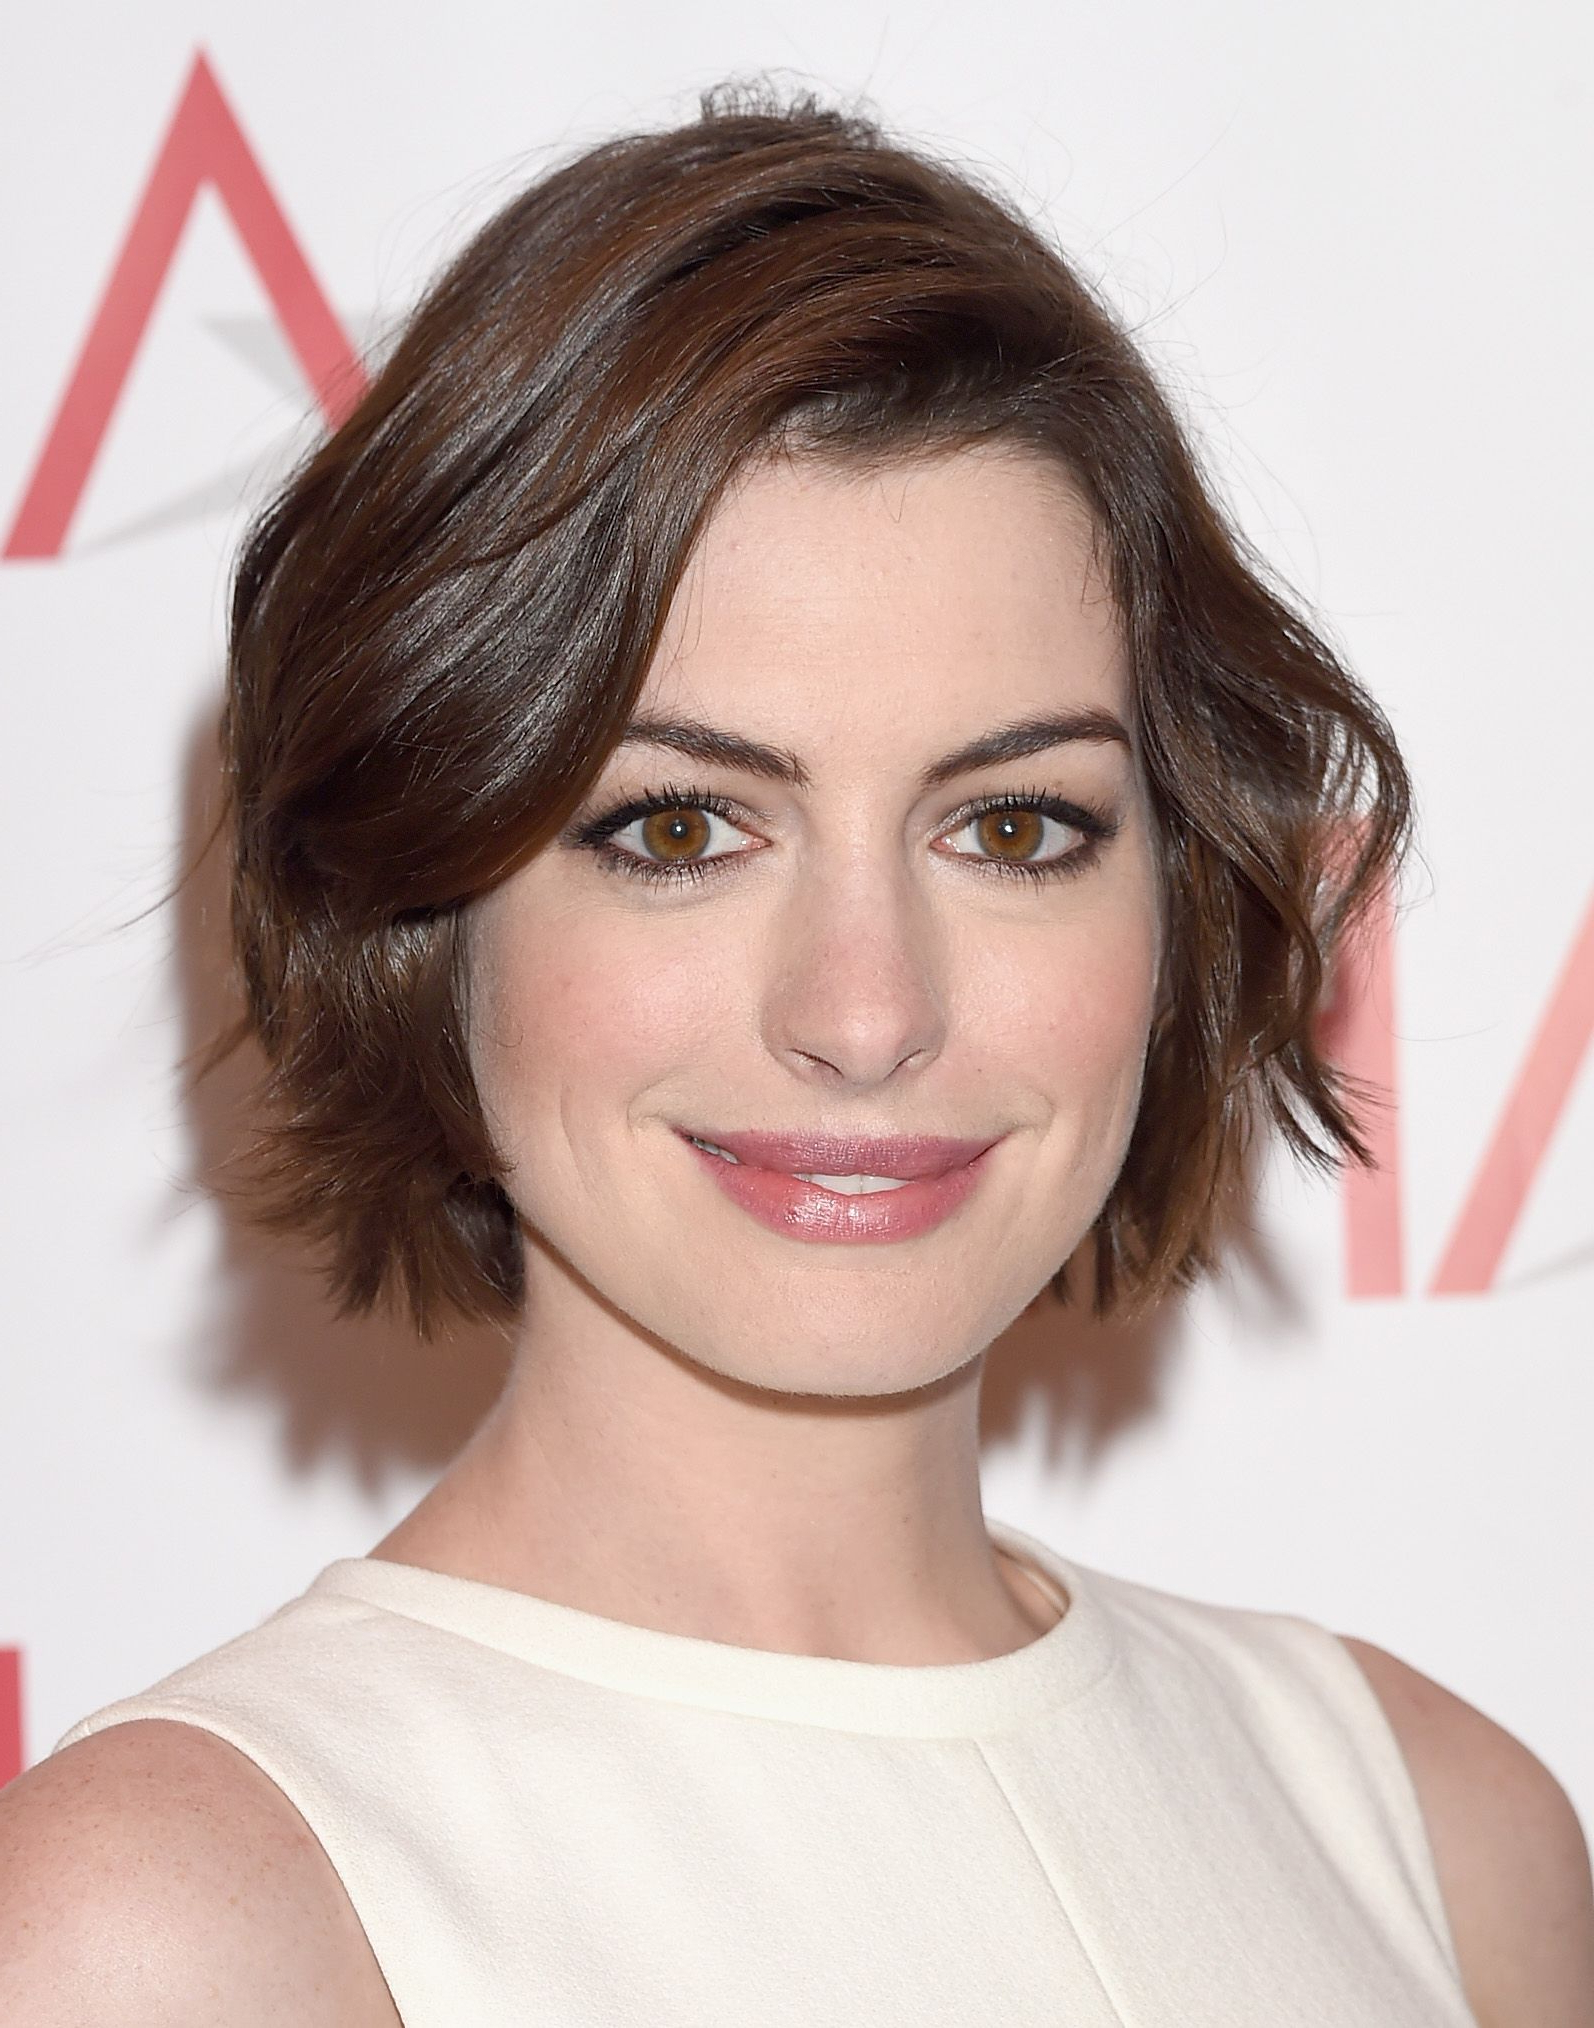 24 Best Haircuts For Women Over 30 – Short Hairstyle Ideas With Short Haircuts For Women In Their 30S (View 2 of 25)